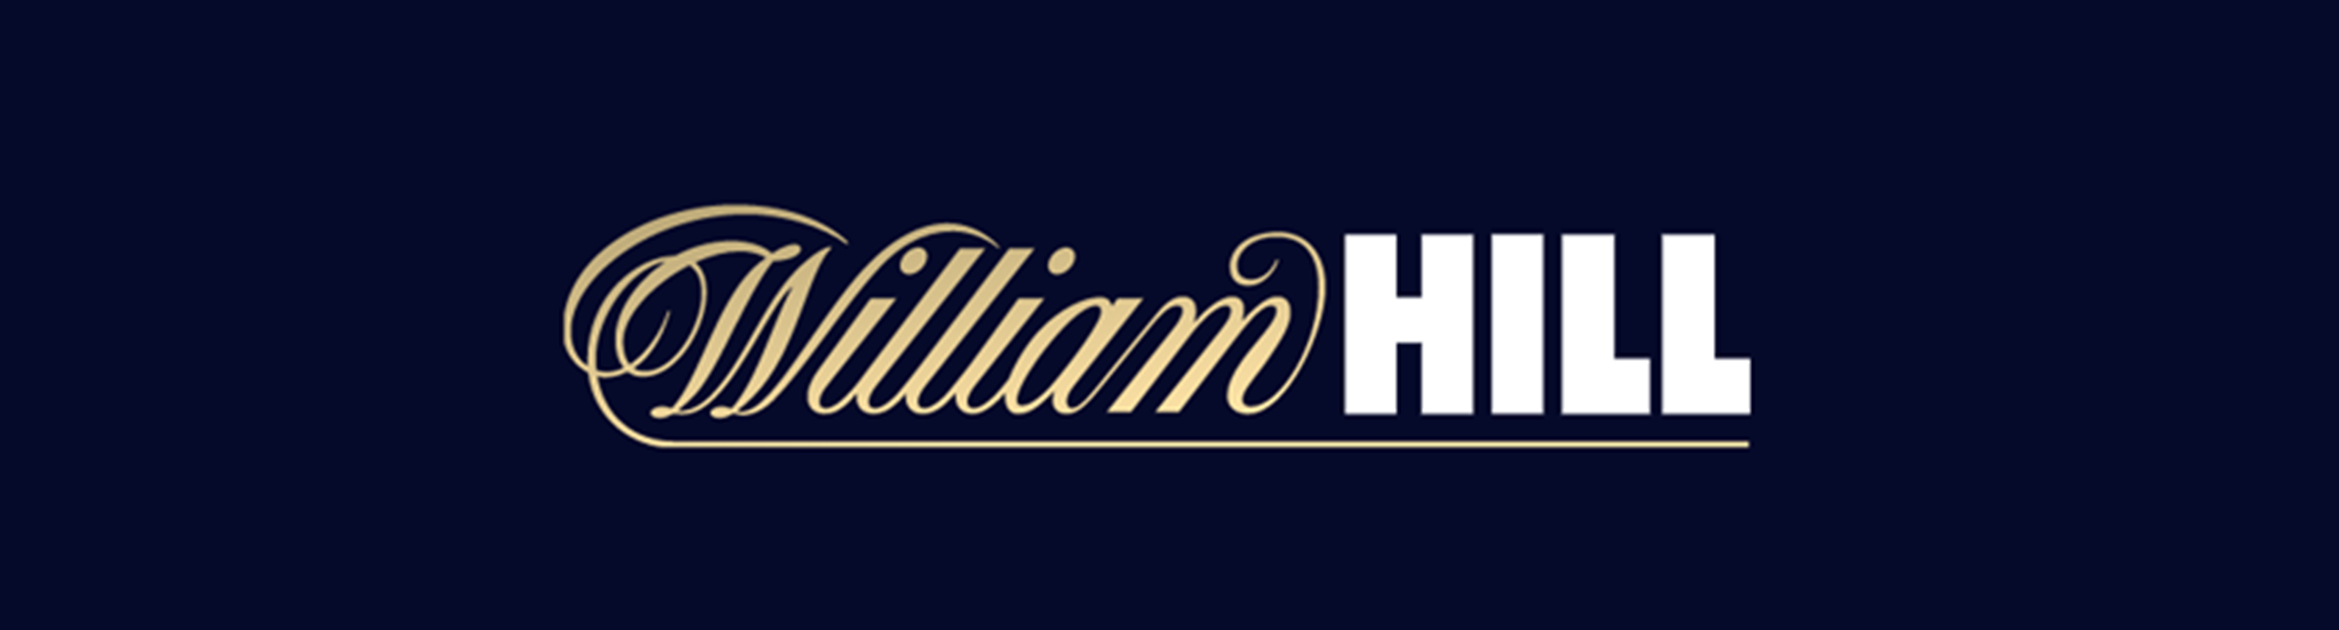 swilliam hill